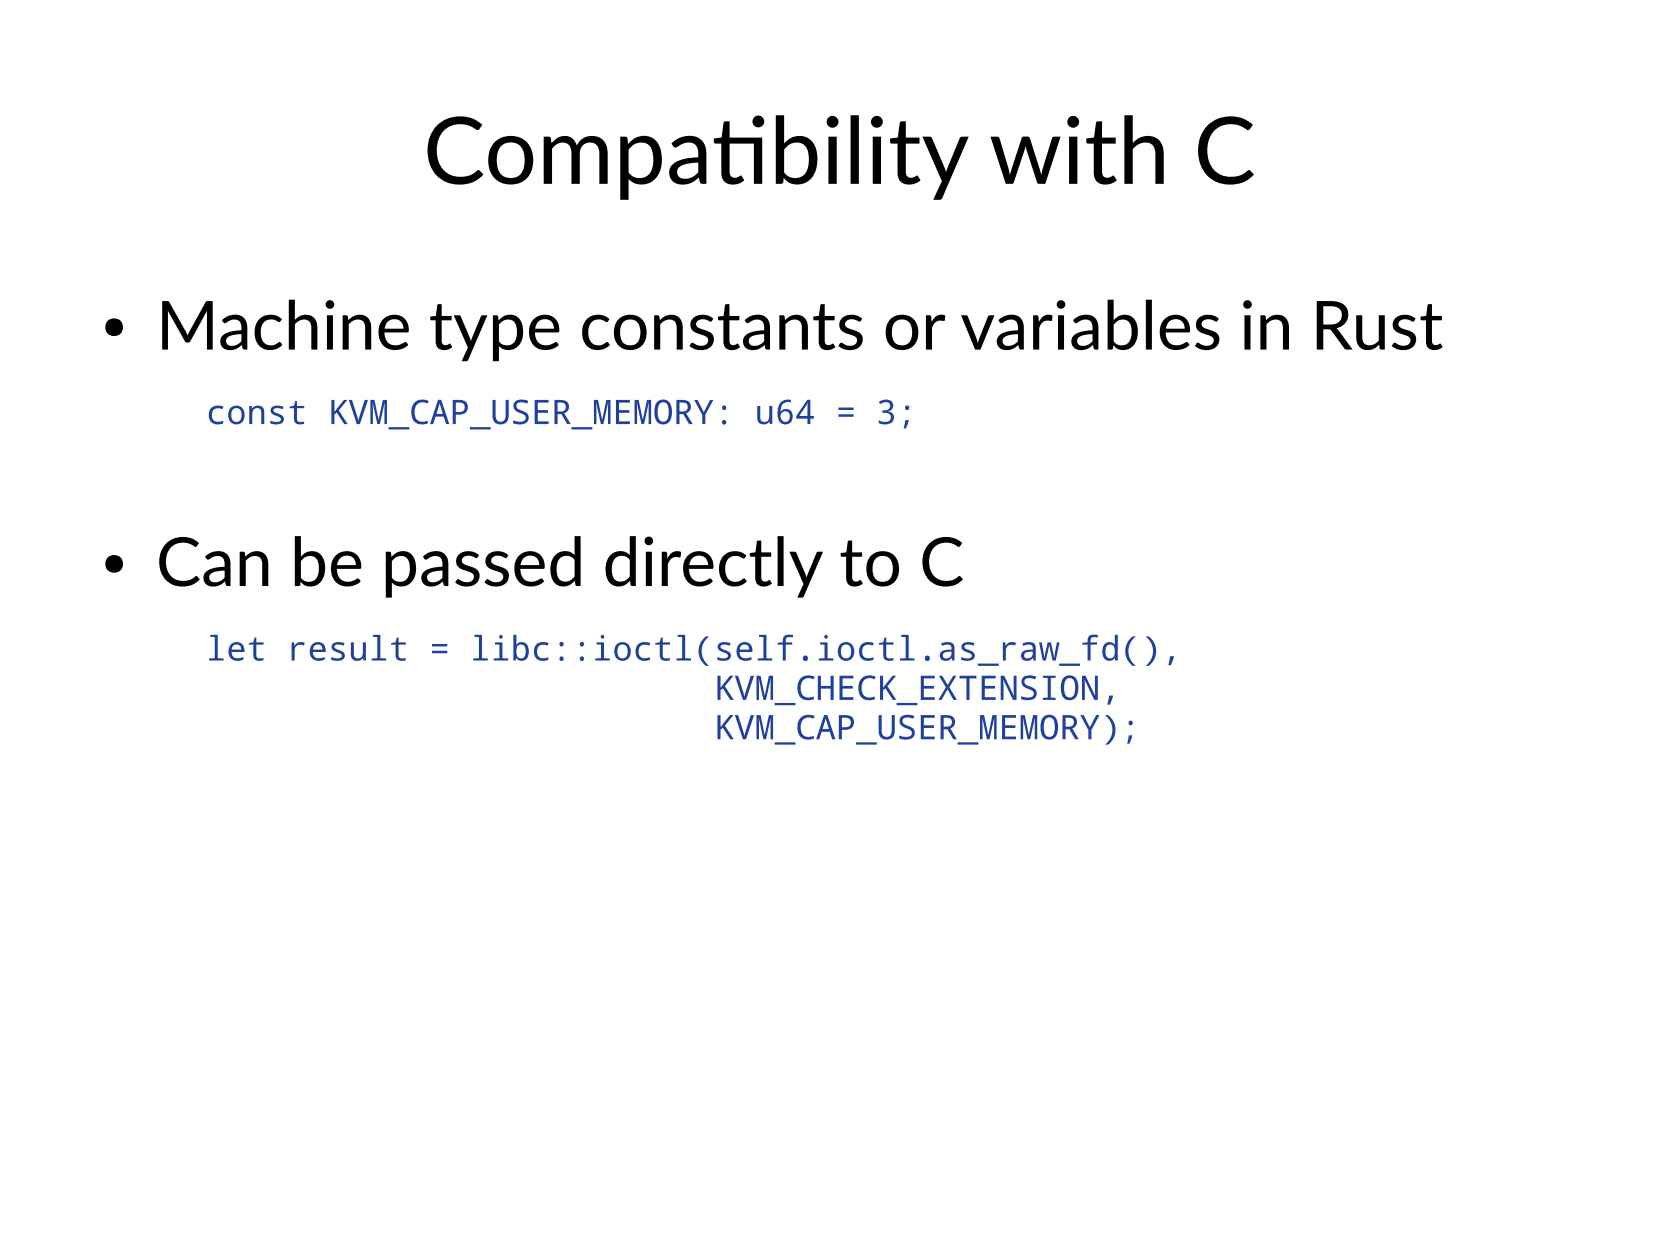 Secure Isolation in Rust: Hypervisors, Containers, and the Future of